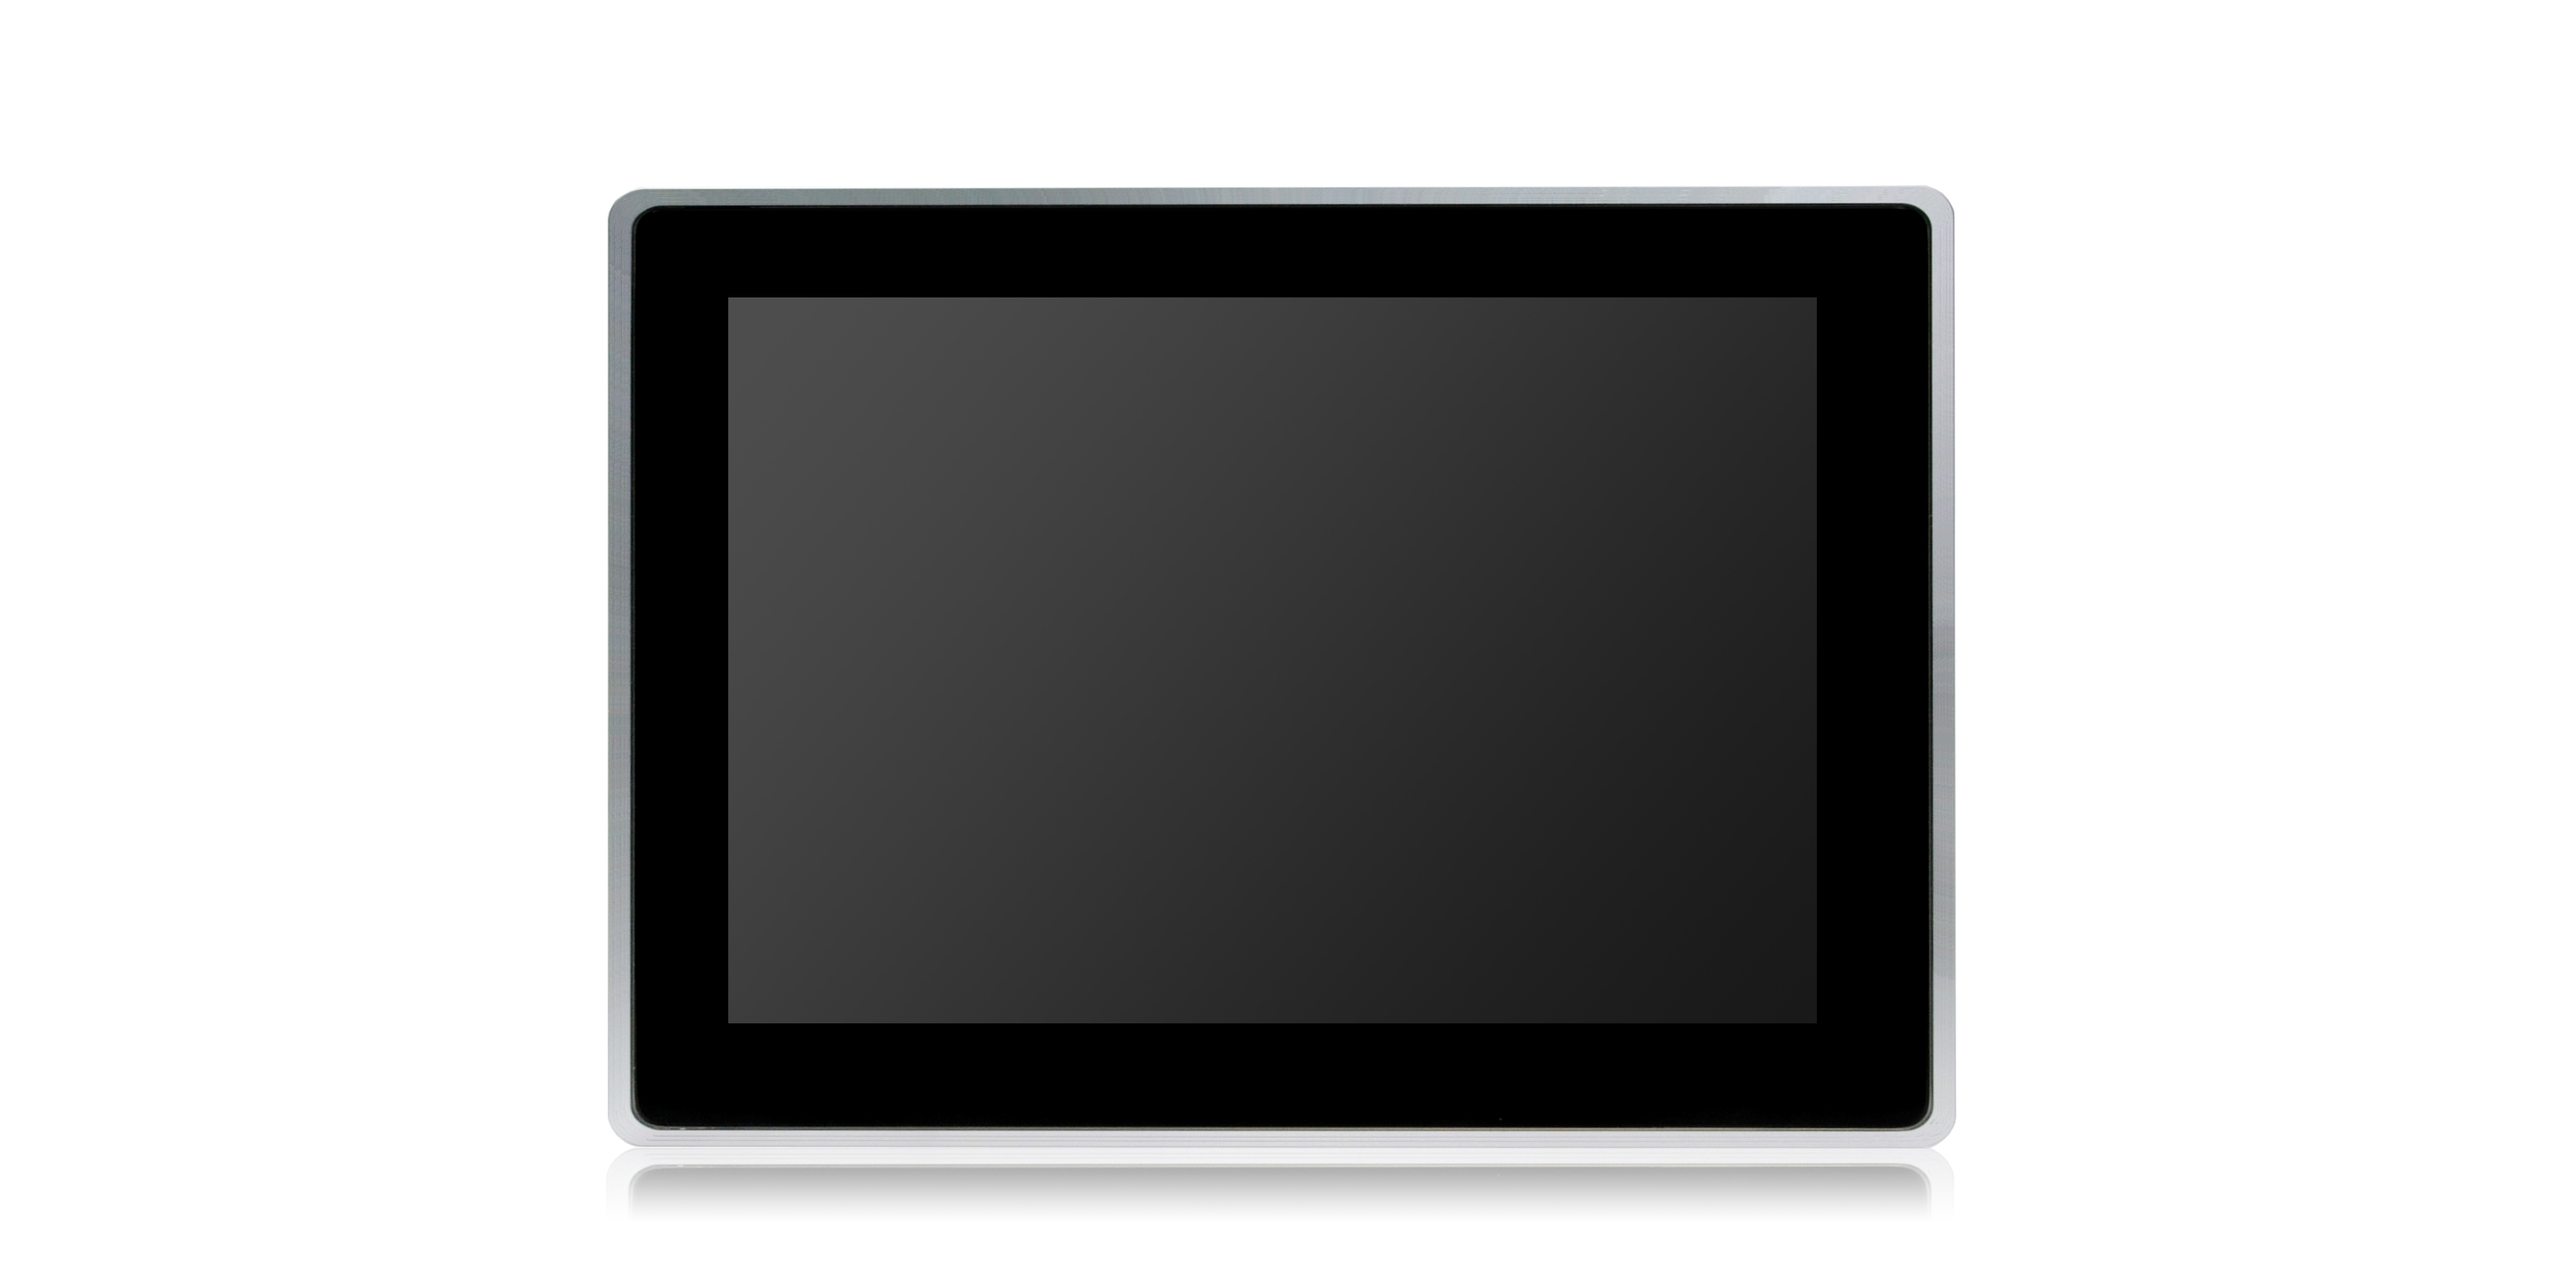 PCap Touch Panel PC – Syslogic C-Series